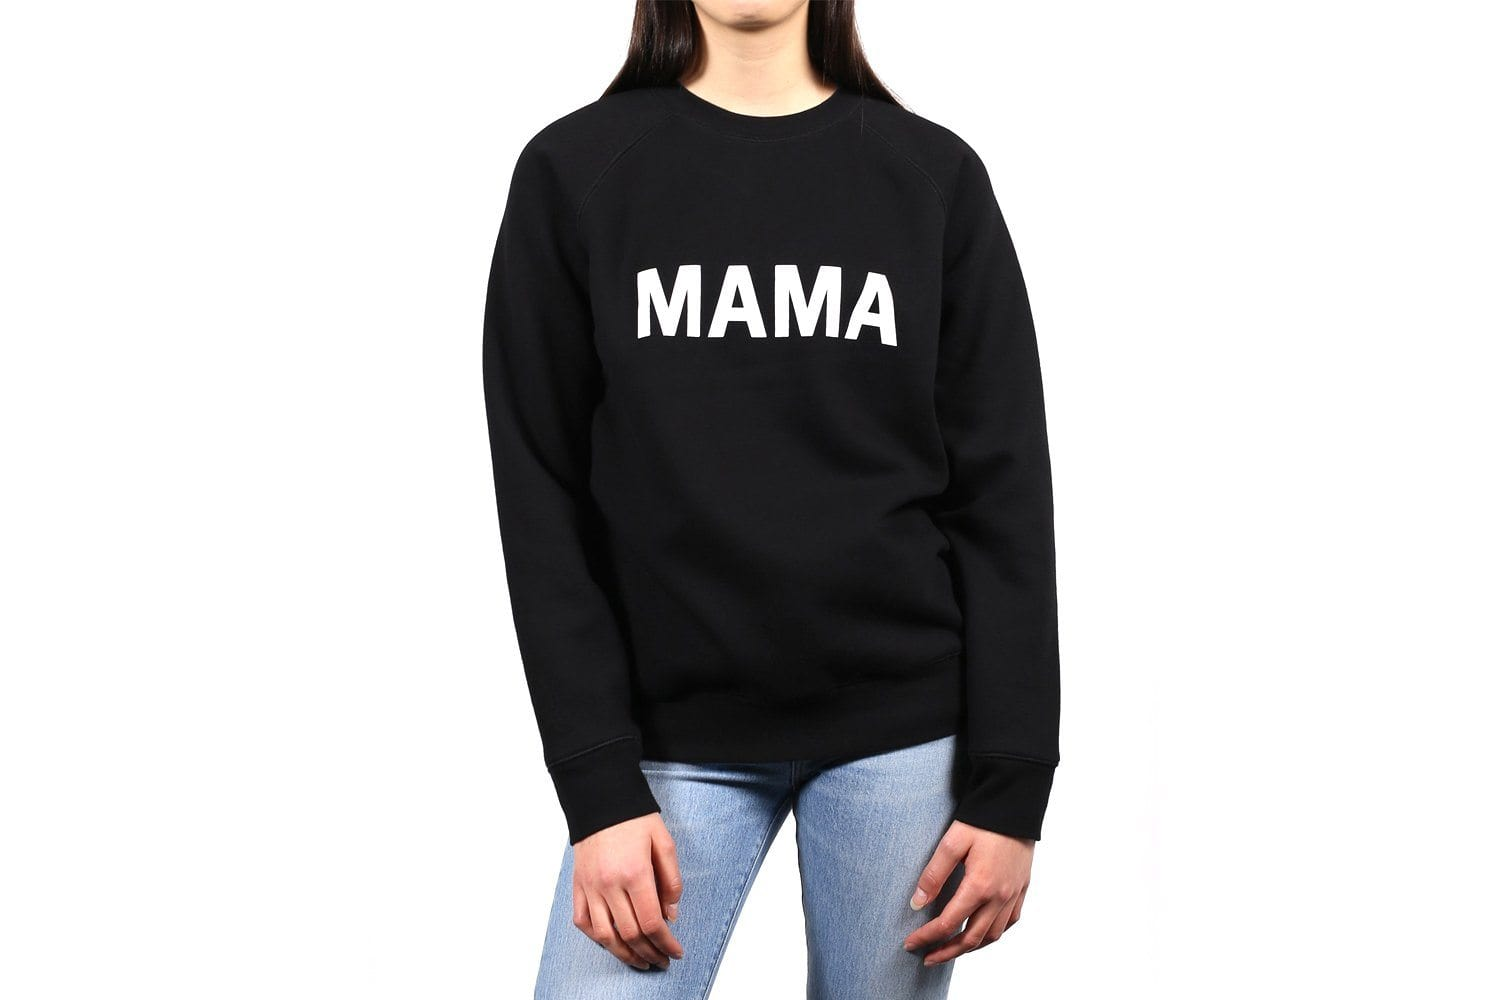 MAMA CREW NECK BOLD-BTL140 WOMENS SOFTGOODS BRUNETTE THE LABEL